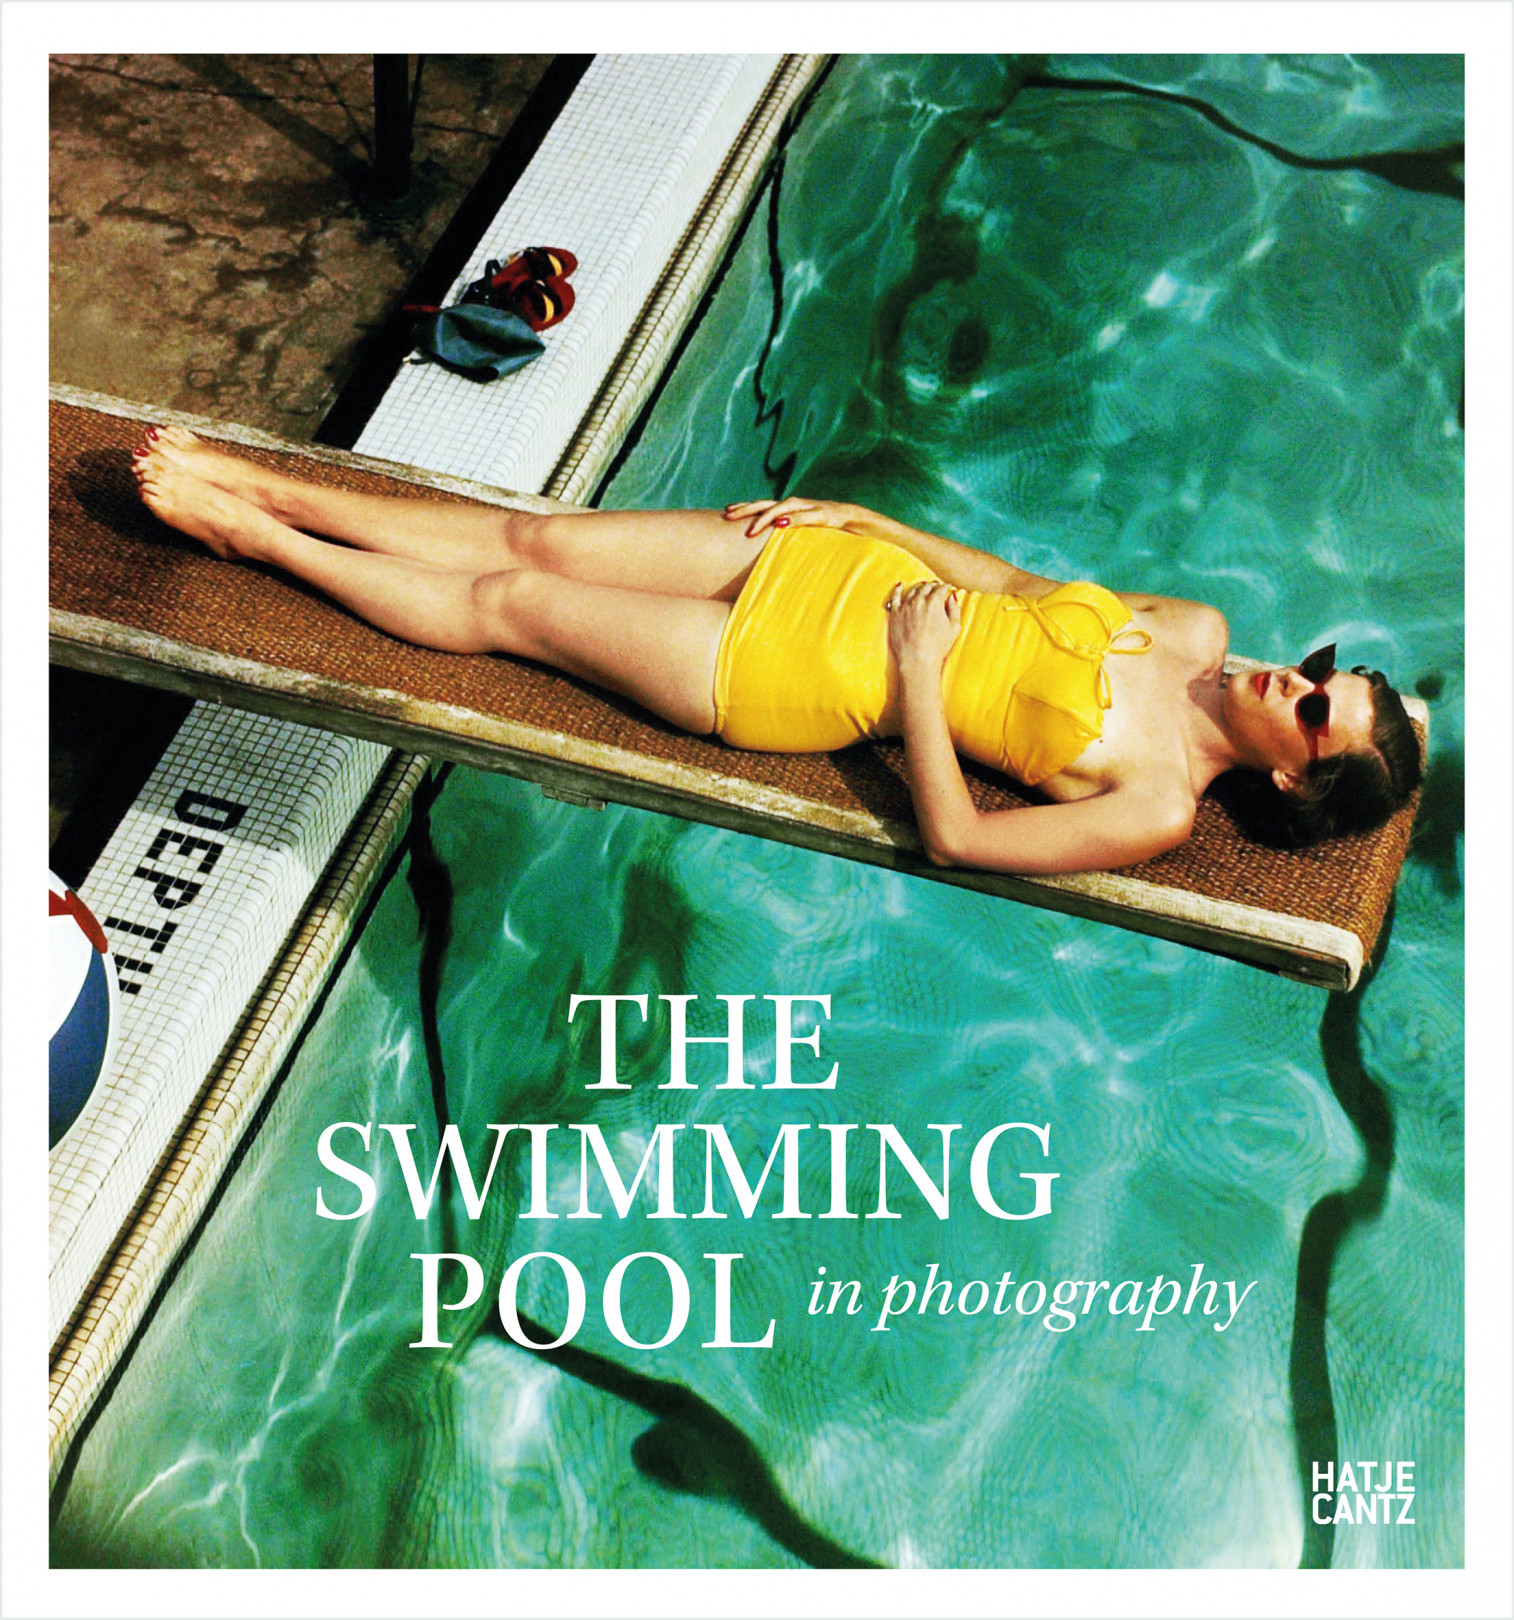 『The Swimming Pool in Photography』